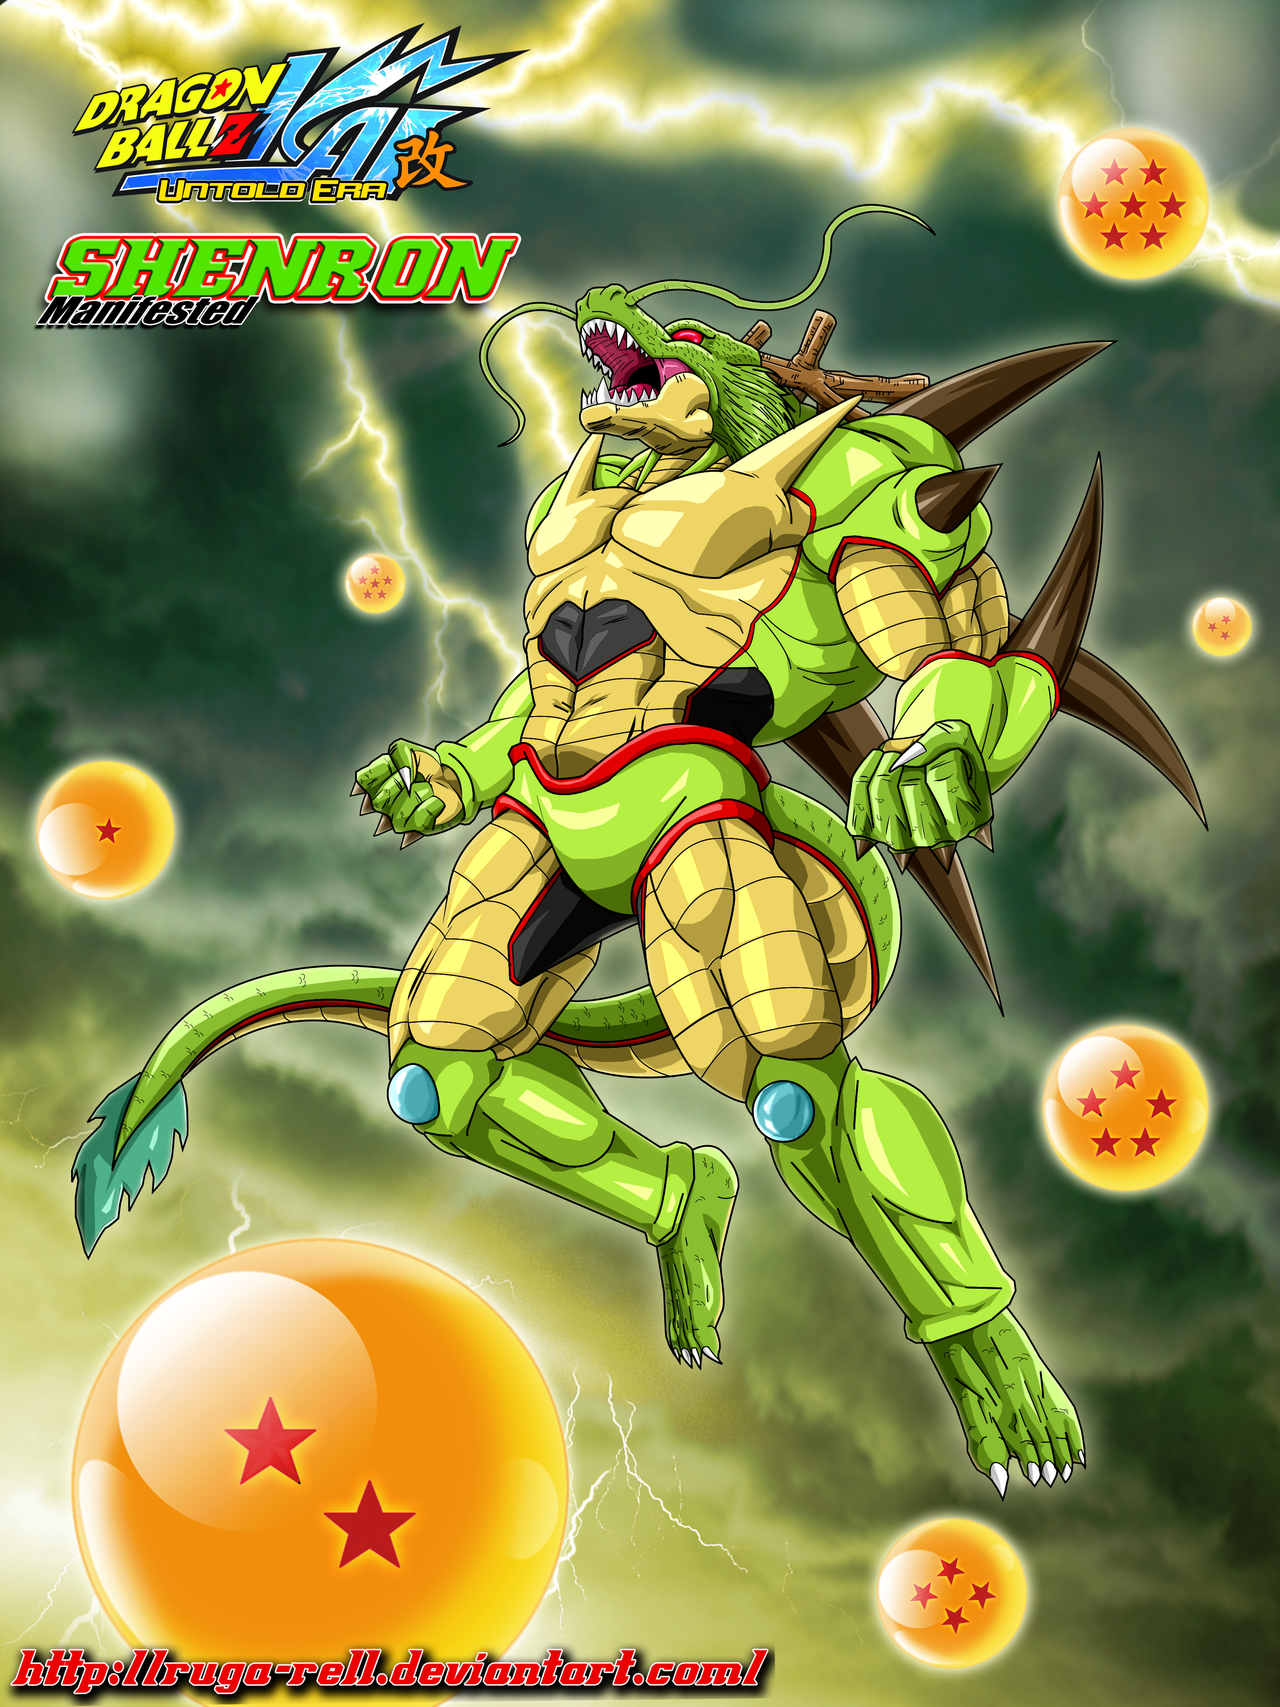 Shenron The Manifest Dragon By Ruga Rell On Deviantart Http Ruga Rell Deviantart Com Art Shenron The Mani Dragon Ball Z Anime Dragon Ball Super Dragon Ball